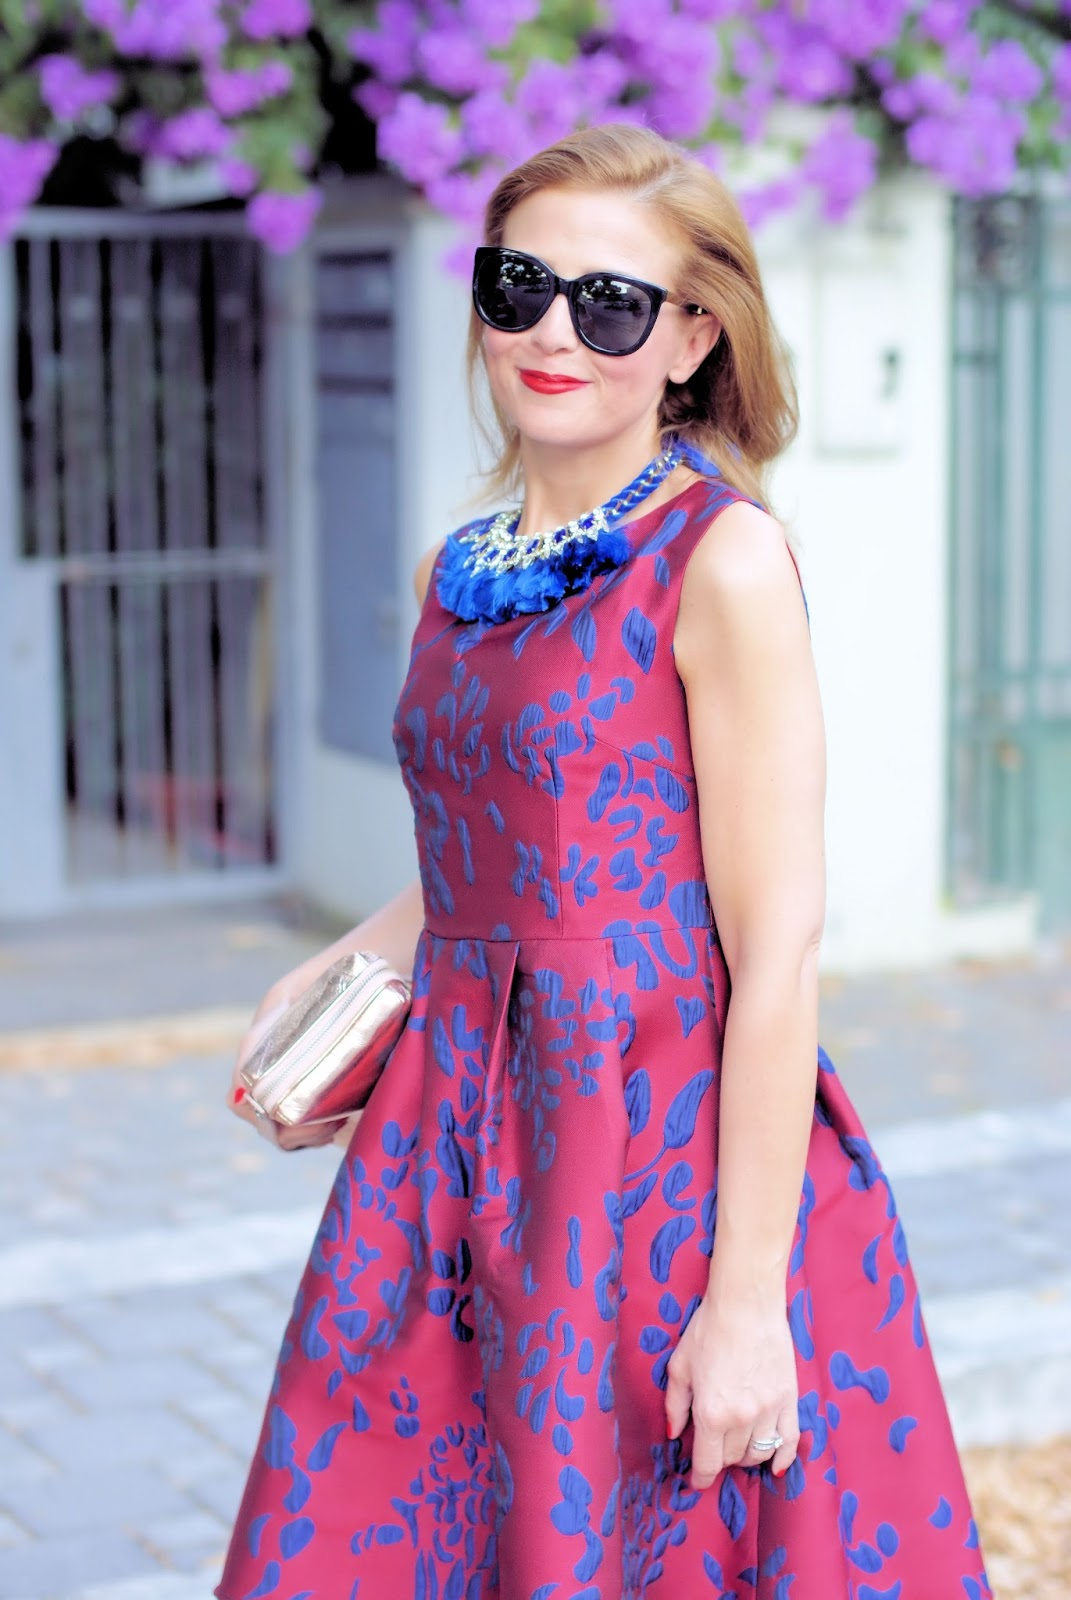 Bon ton jacquard dress on Fashion and Cookies fashion blog, fashion blogger style